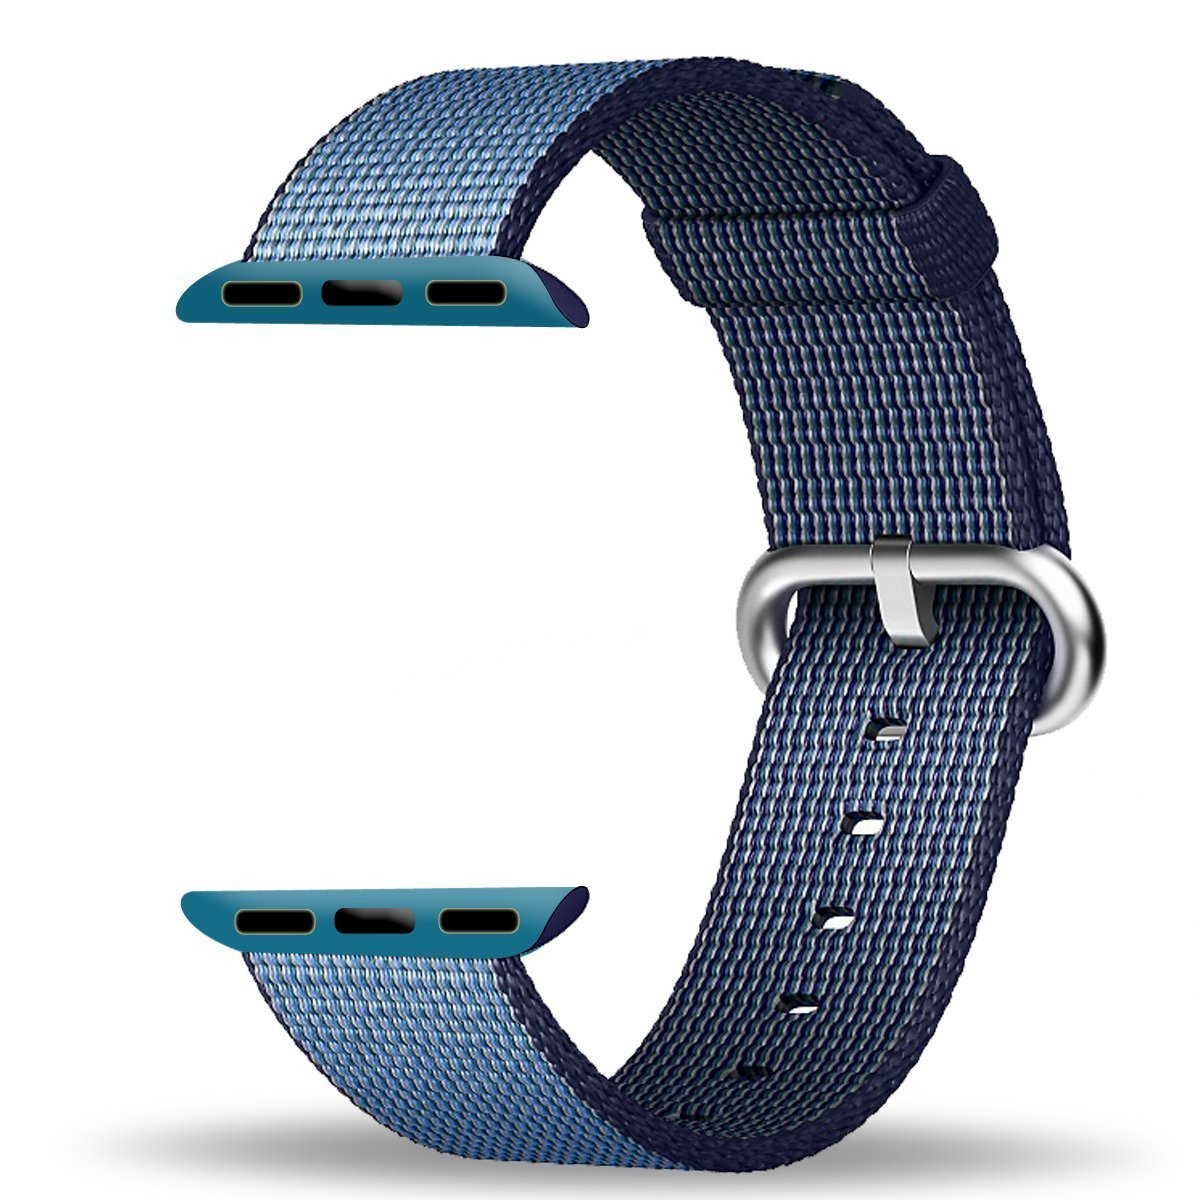 Apple Watch Band Series 1 Series 2, TitanFan Newest Fine Woven Nylon Strap Replacement Wrist Band for 2016 Apple Watch iWatch (Navy 38mm)